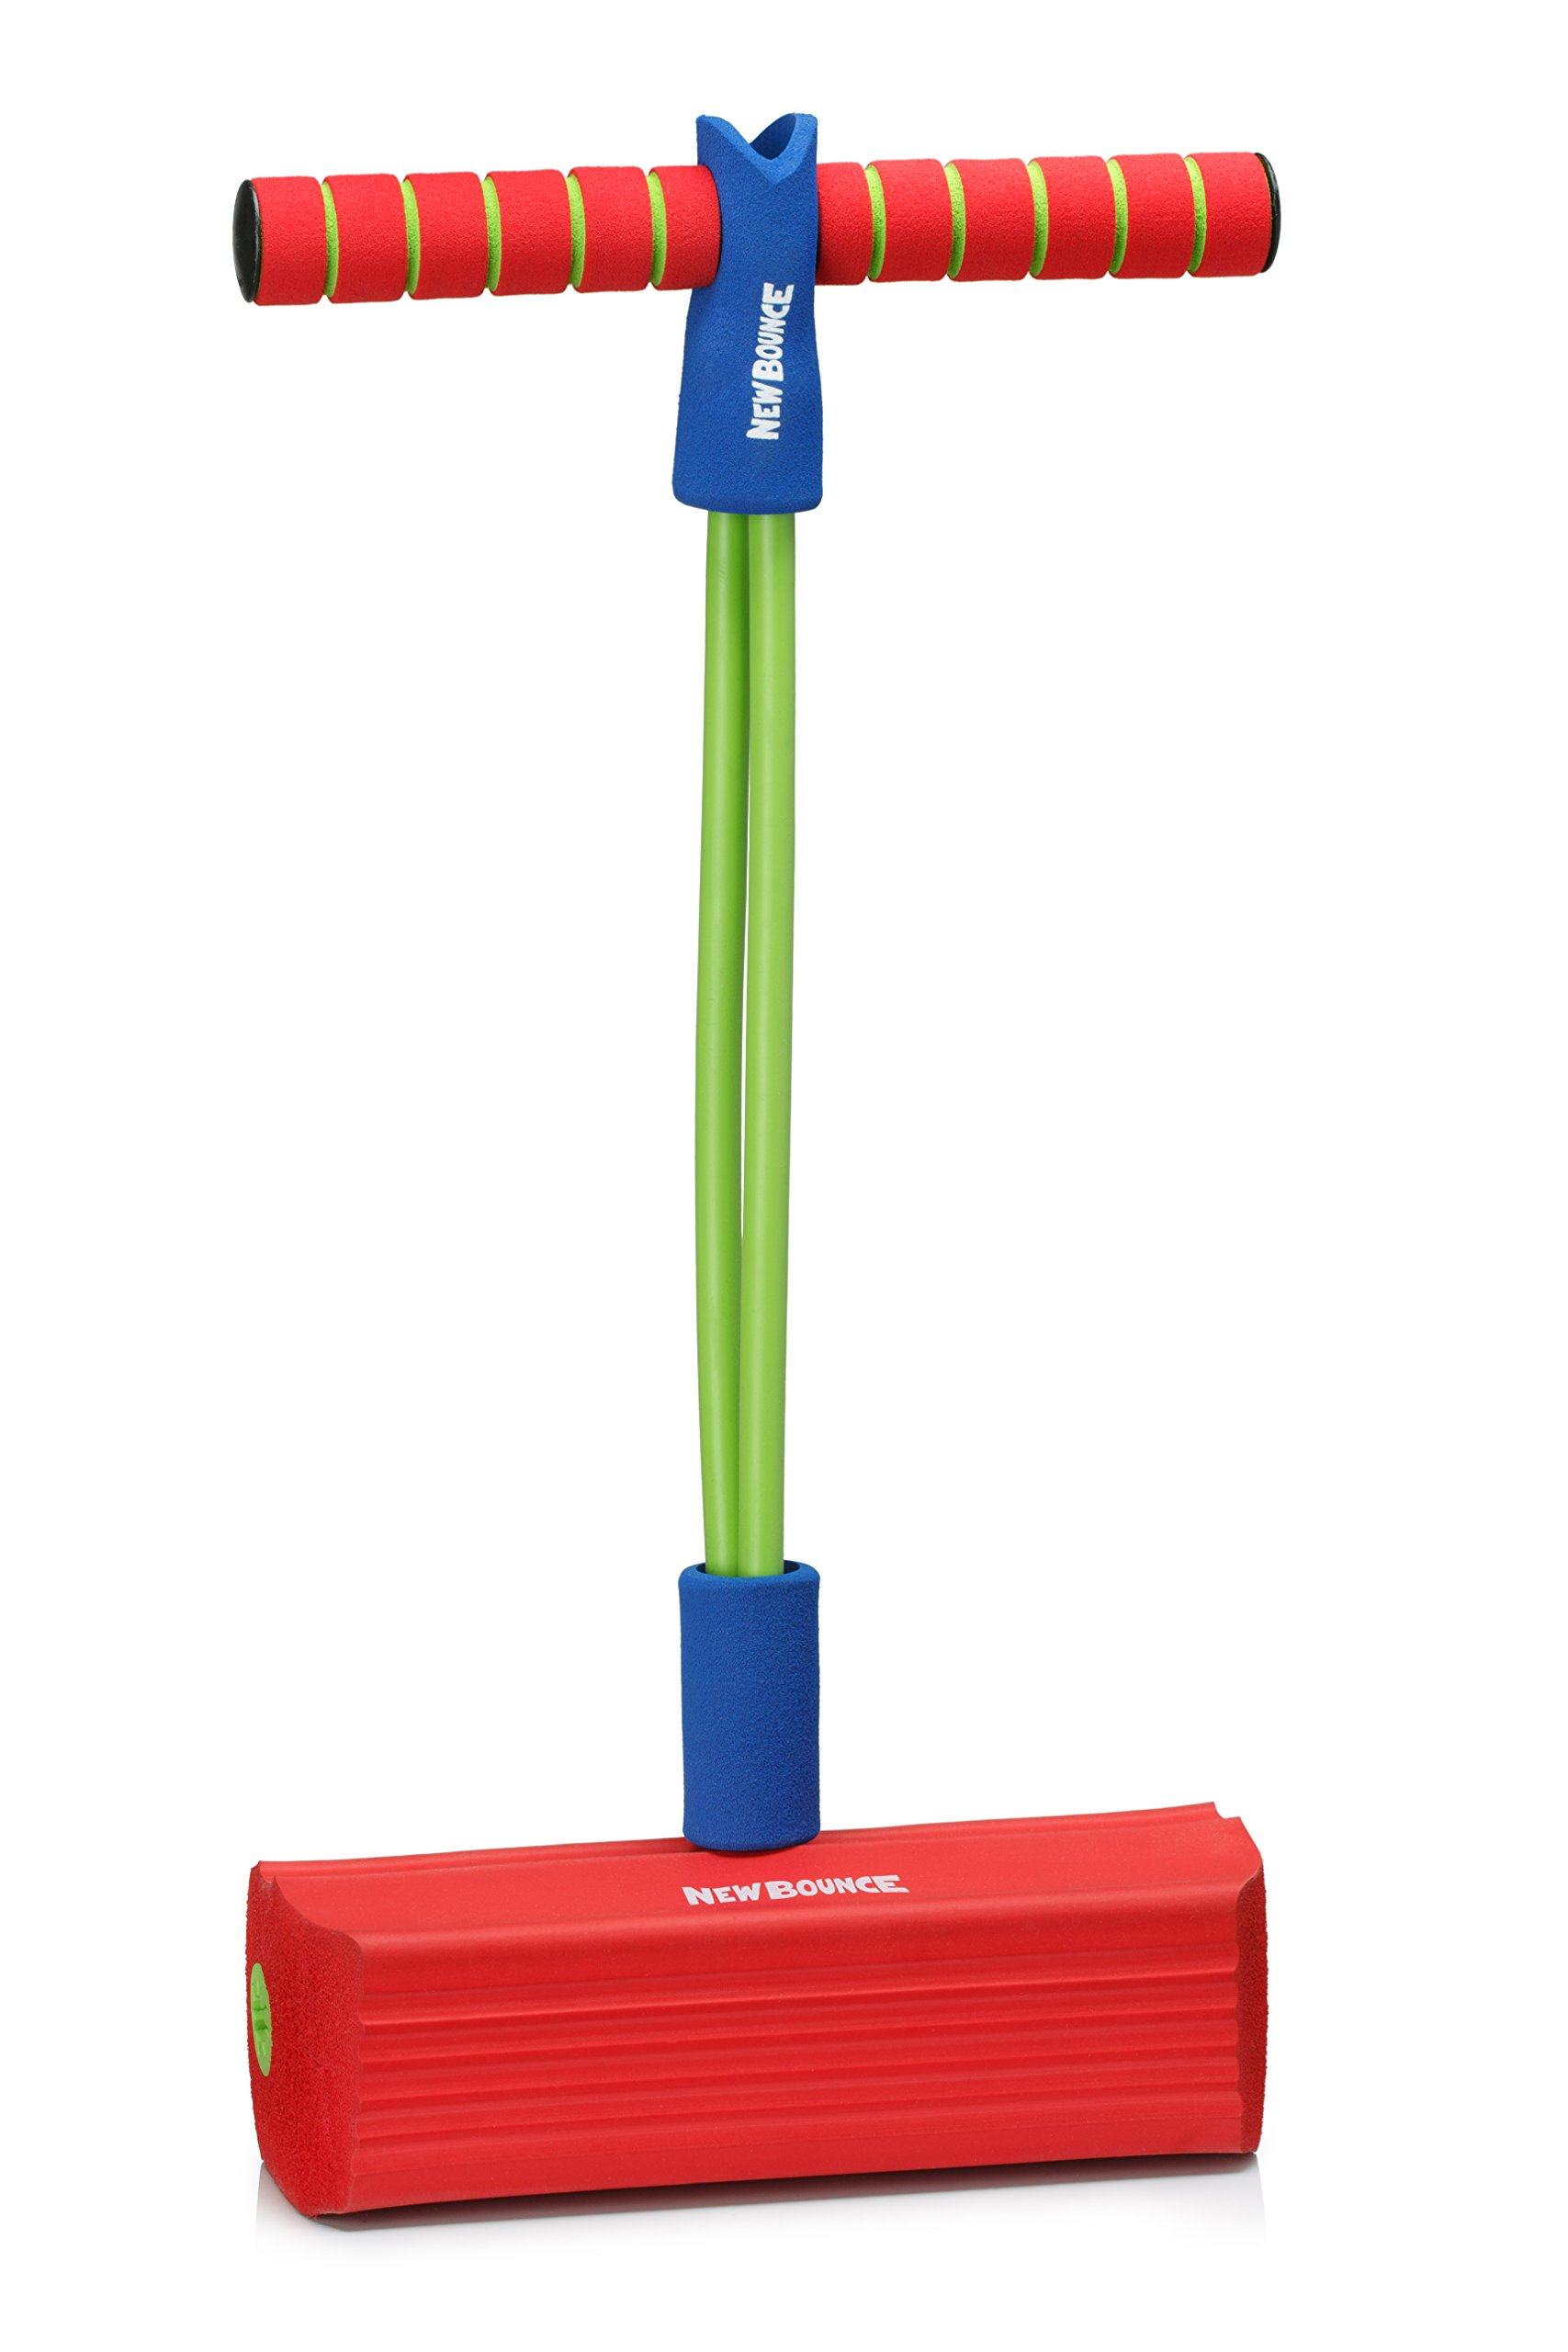 New Bounce Foam Pogo Stick Jumper for Kids 100% Safe, Bouncy Toy for Toddlers|Fun Foam Hopper for Children|Squeaks with Each Hop|Great Gift for Girls and Boys (Red)